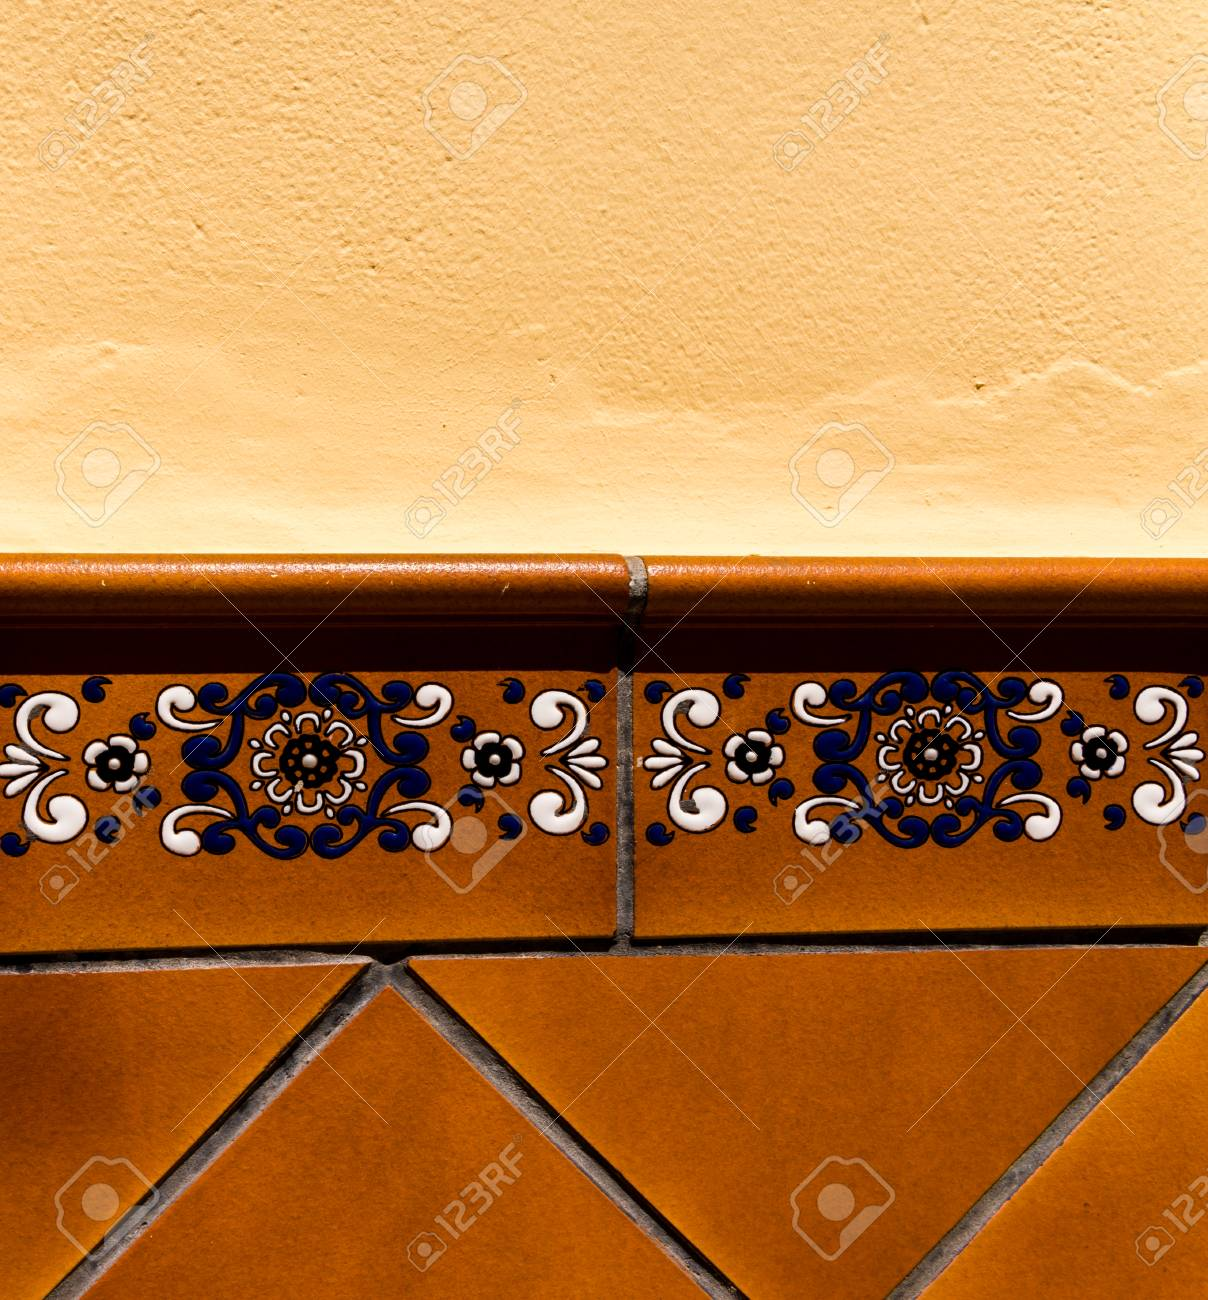 Famous Decorative Wall Art Tiles Pictures - Wall Art Collections ...